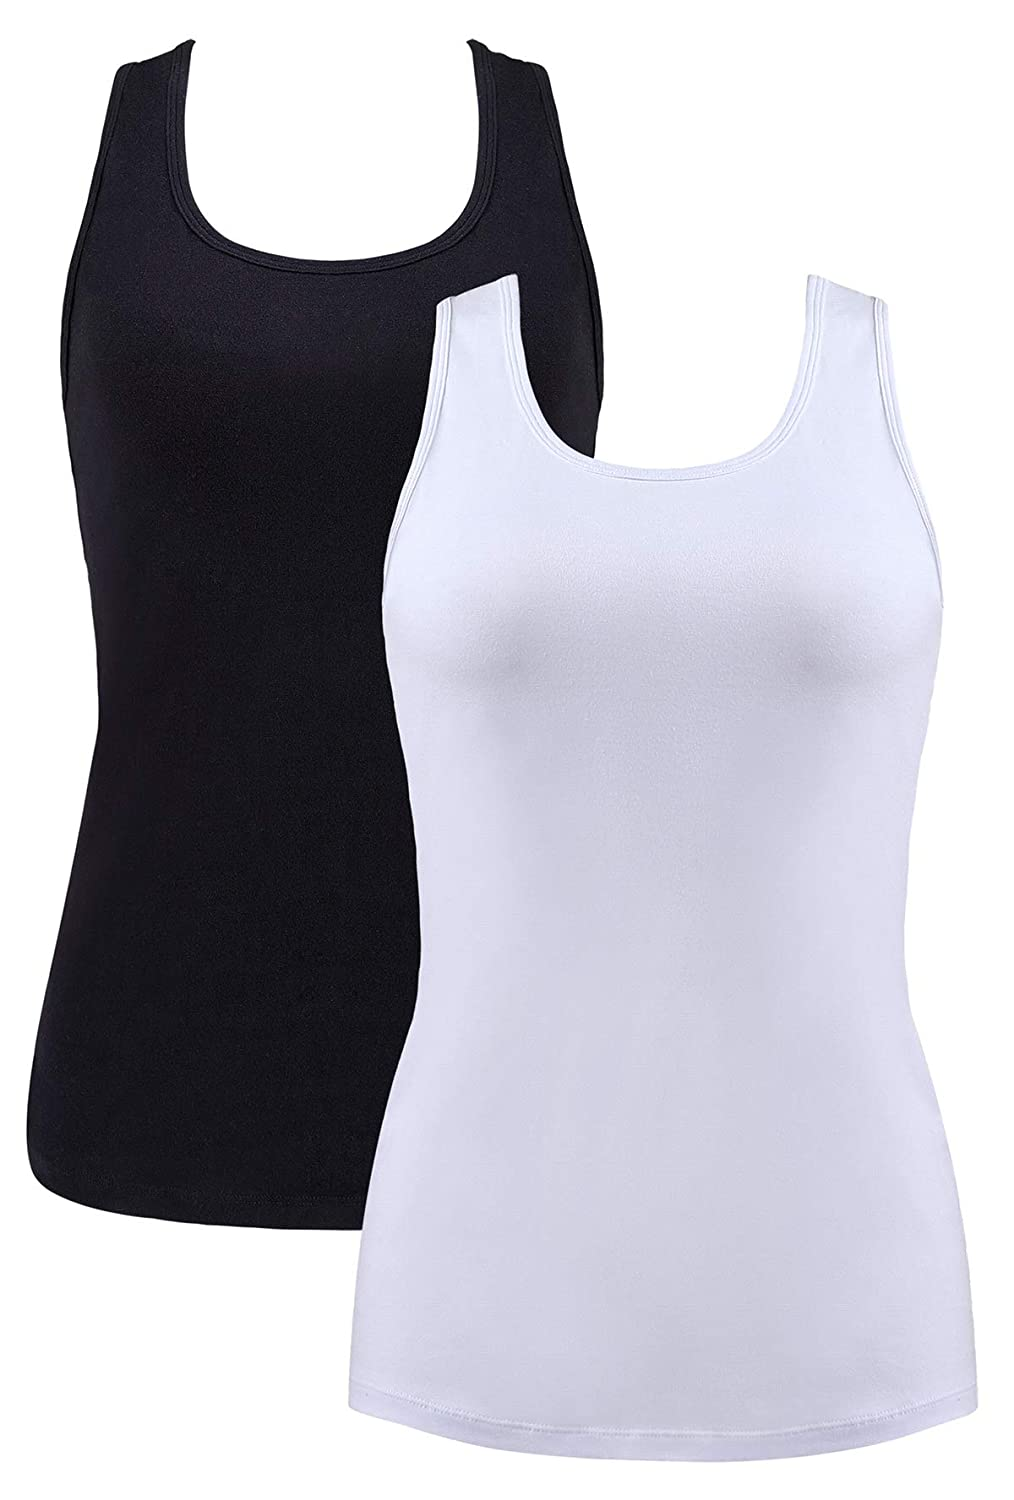 Black White 2(no Bra) belamo Women's Cotton Camisoles Basic Solid Camis Tank Top with Self Bra 2 Packs